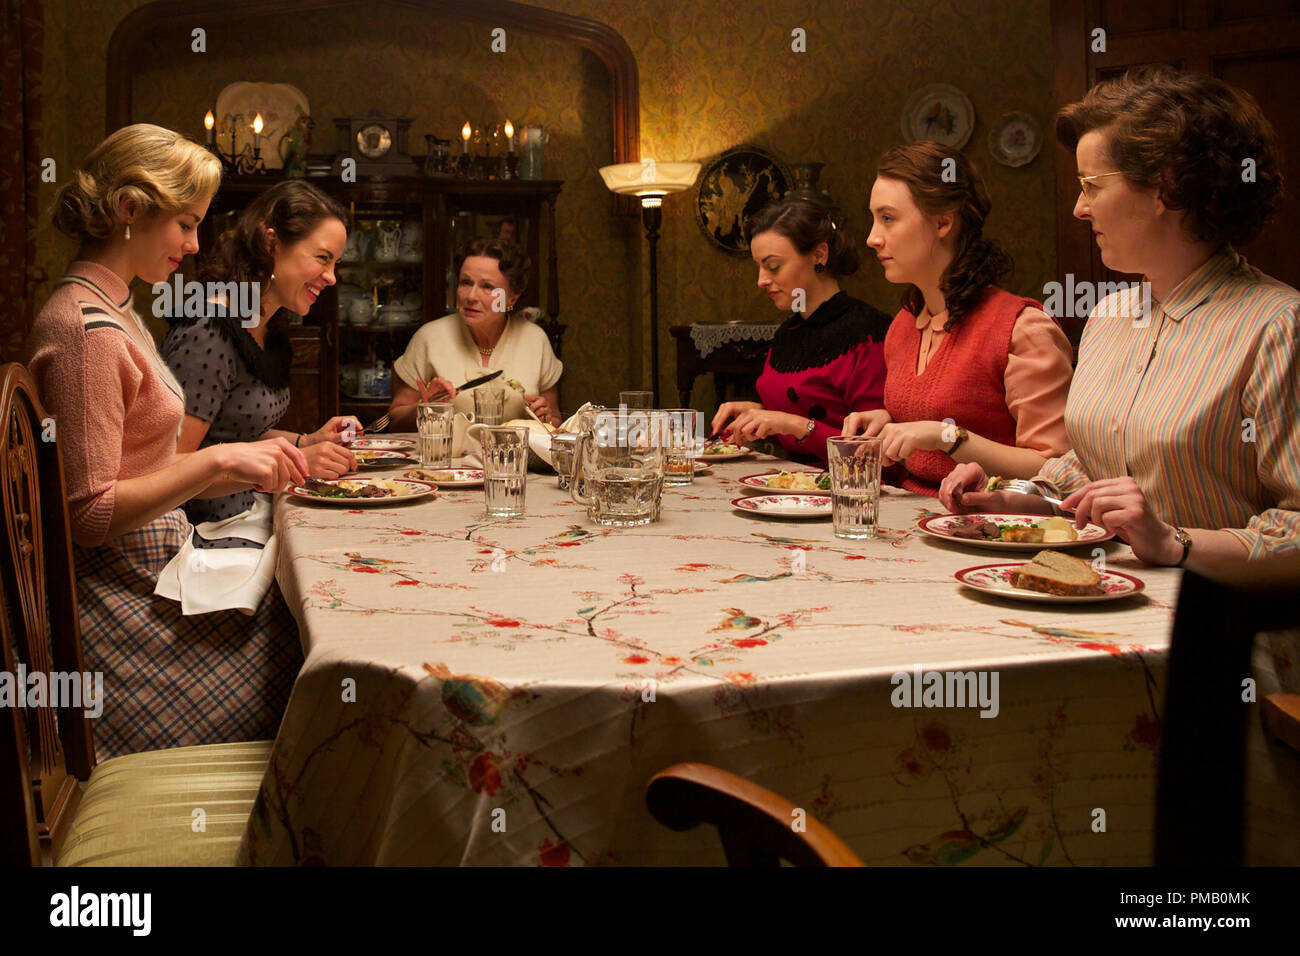 Emily Bett Rickards as 'Patty,' Eve Macklin as 'Diana,' Julie Walters as 'Mrs. Kehoe,' Nora-Jane Noone as 'Sheila' and Saiorse Ronan as 'Eilis' in BROOKLYN. © 2015 Twentieth Century Fox Film Corporation All Rights Reserved - Stock Image